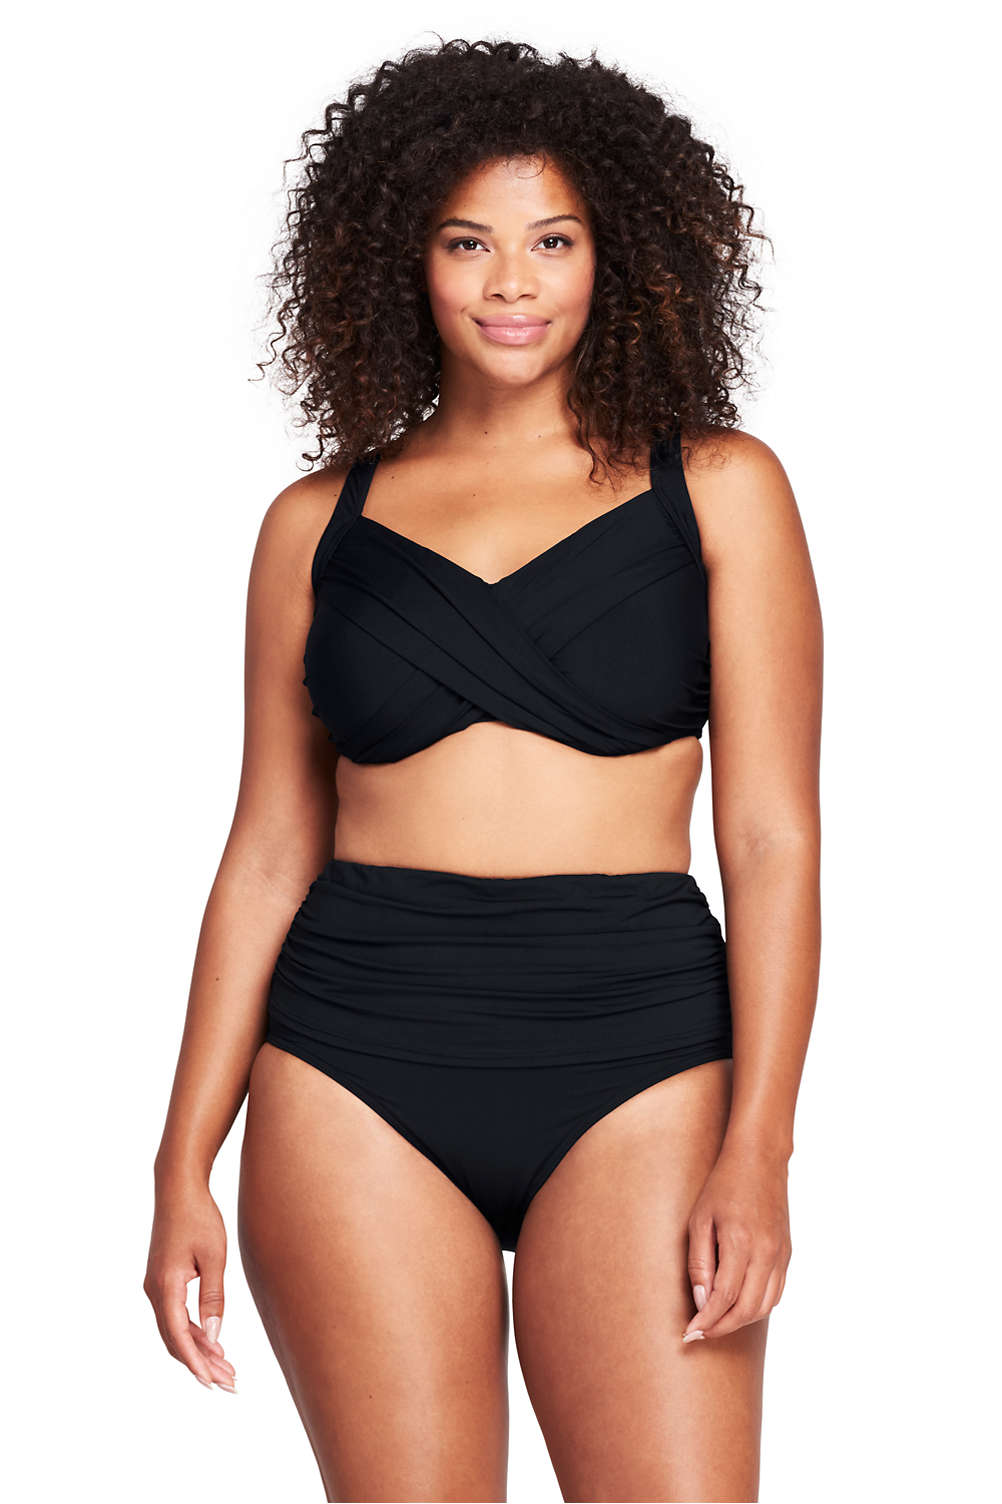 315a5858ec Women's Plus Size DDD-Cup Underwire Wrap Bikini Top from Lands' End